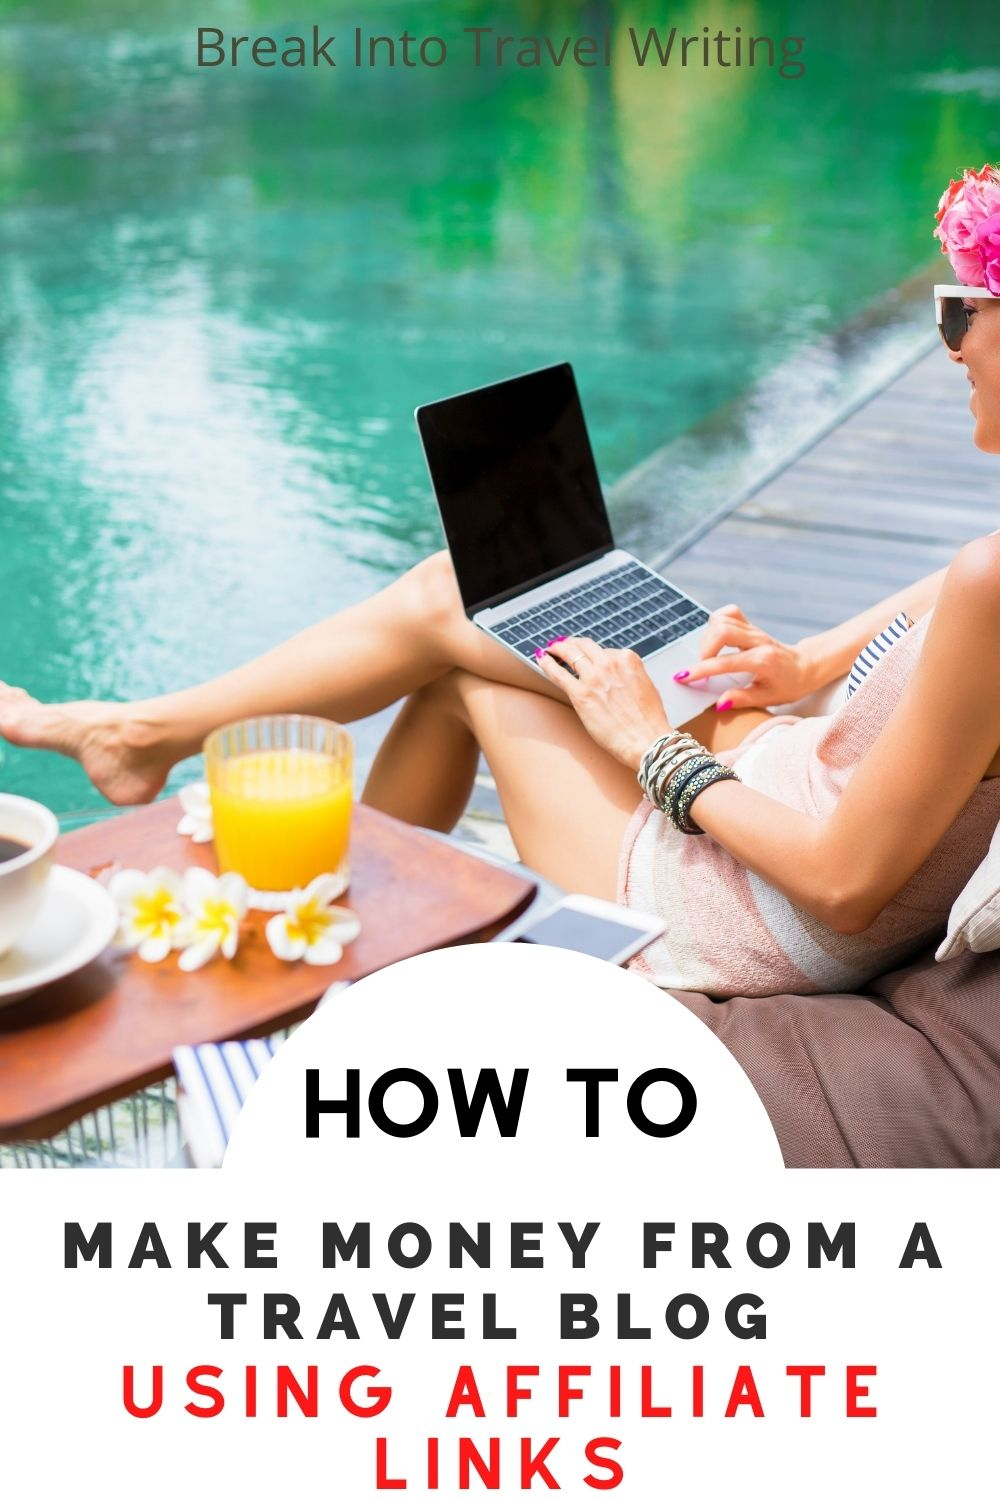 How to Make Money from a Travel Blog